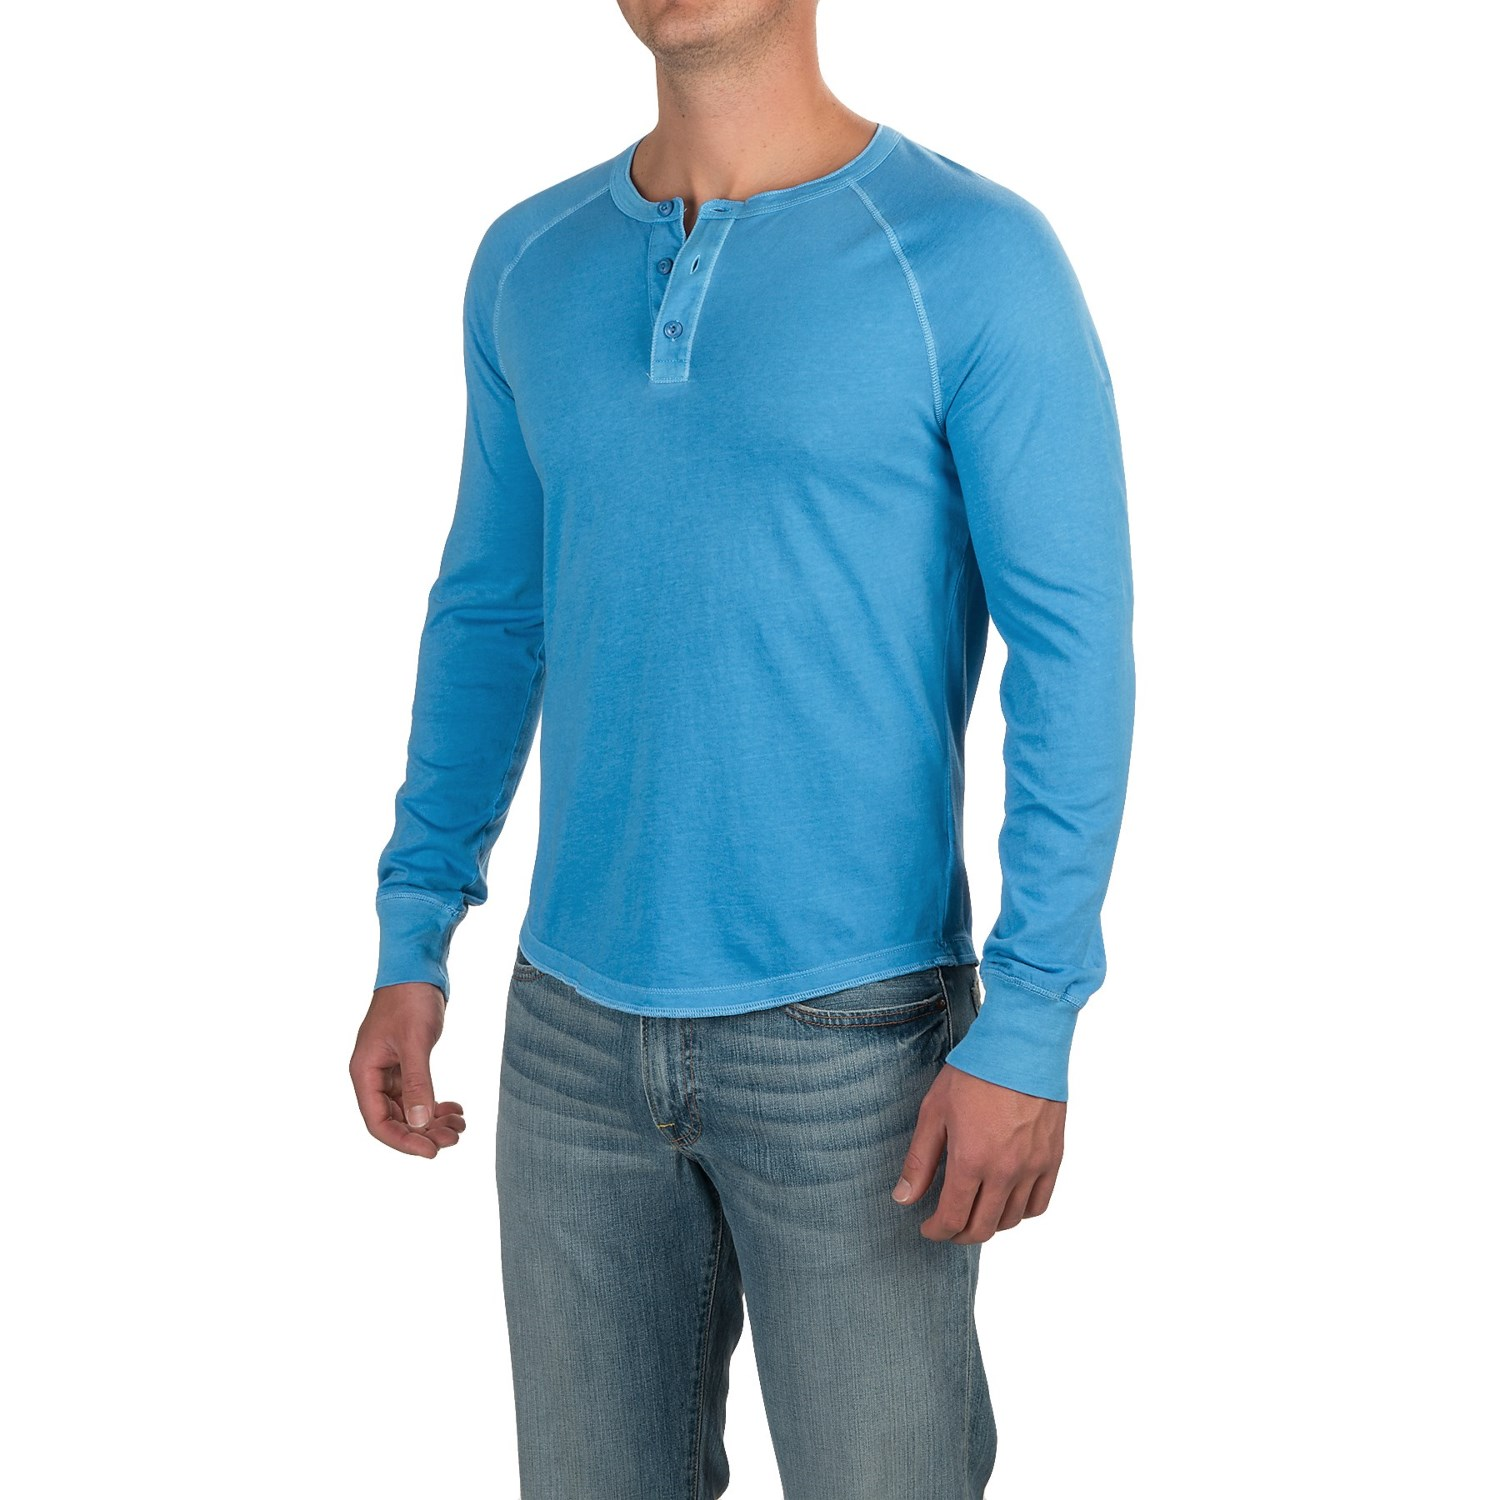 Three button henley shirt for men save 65 for Long sleeve henley shirts for men